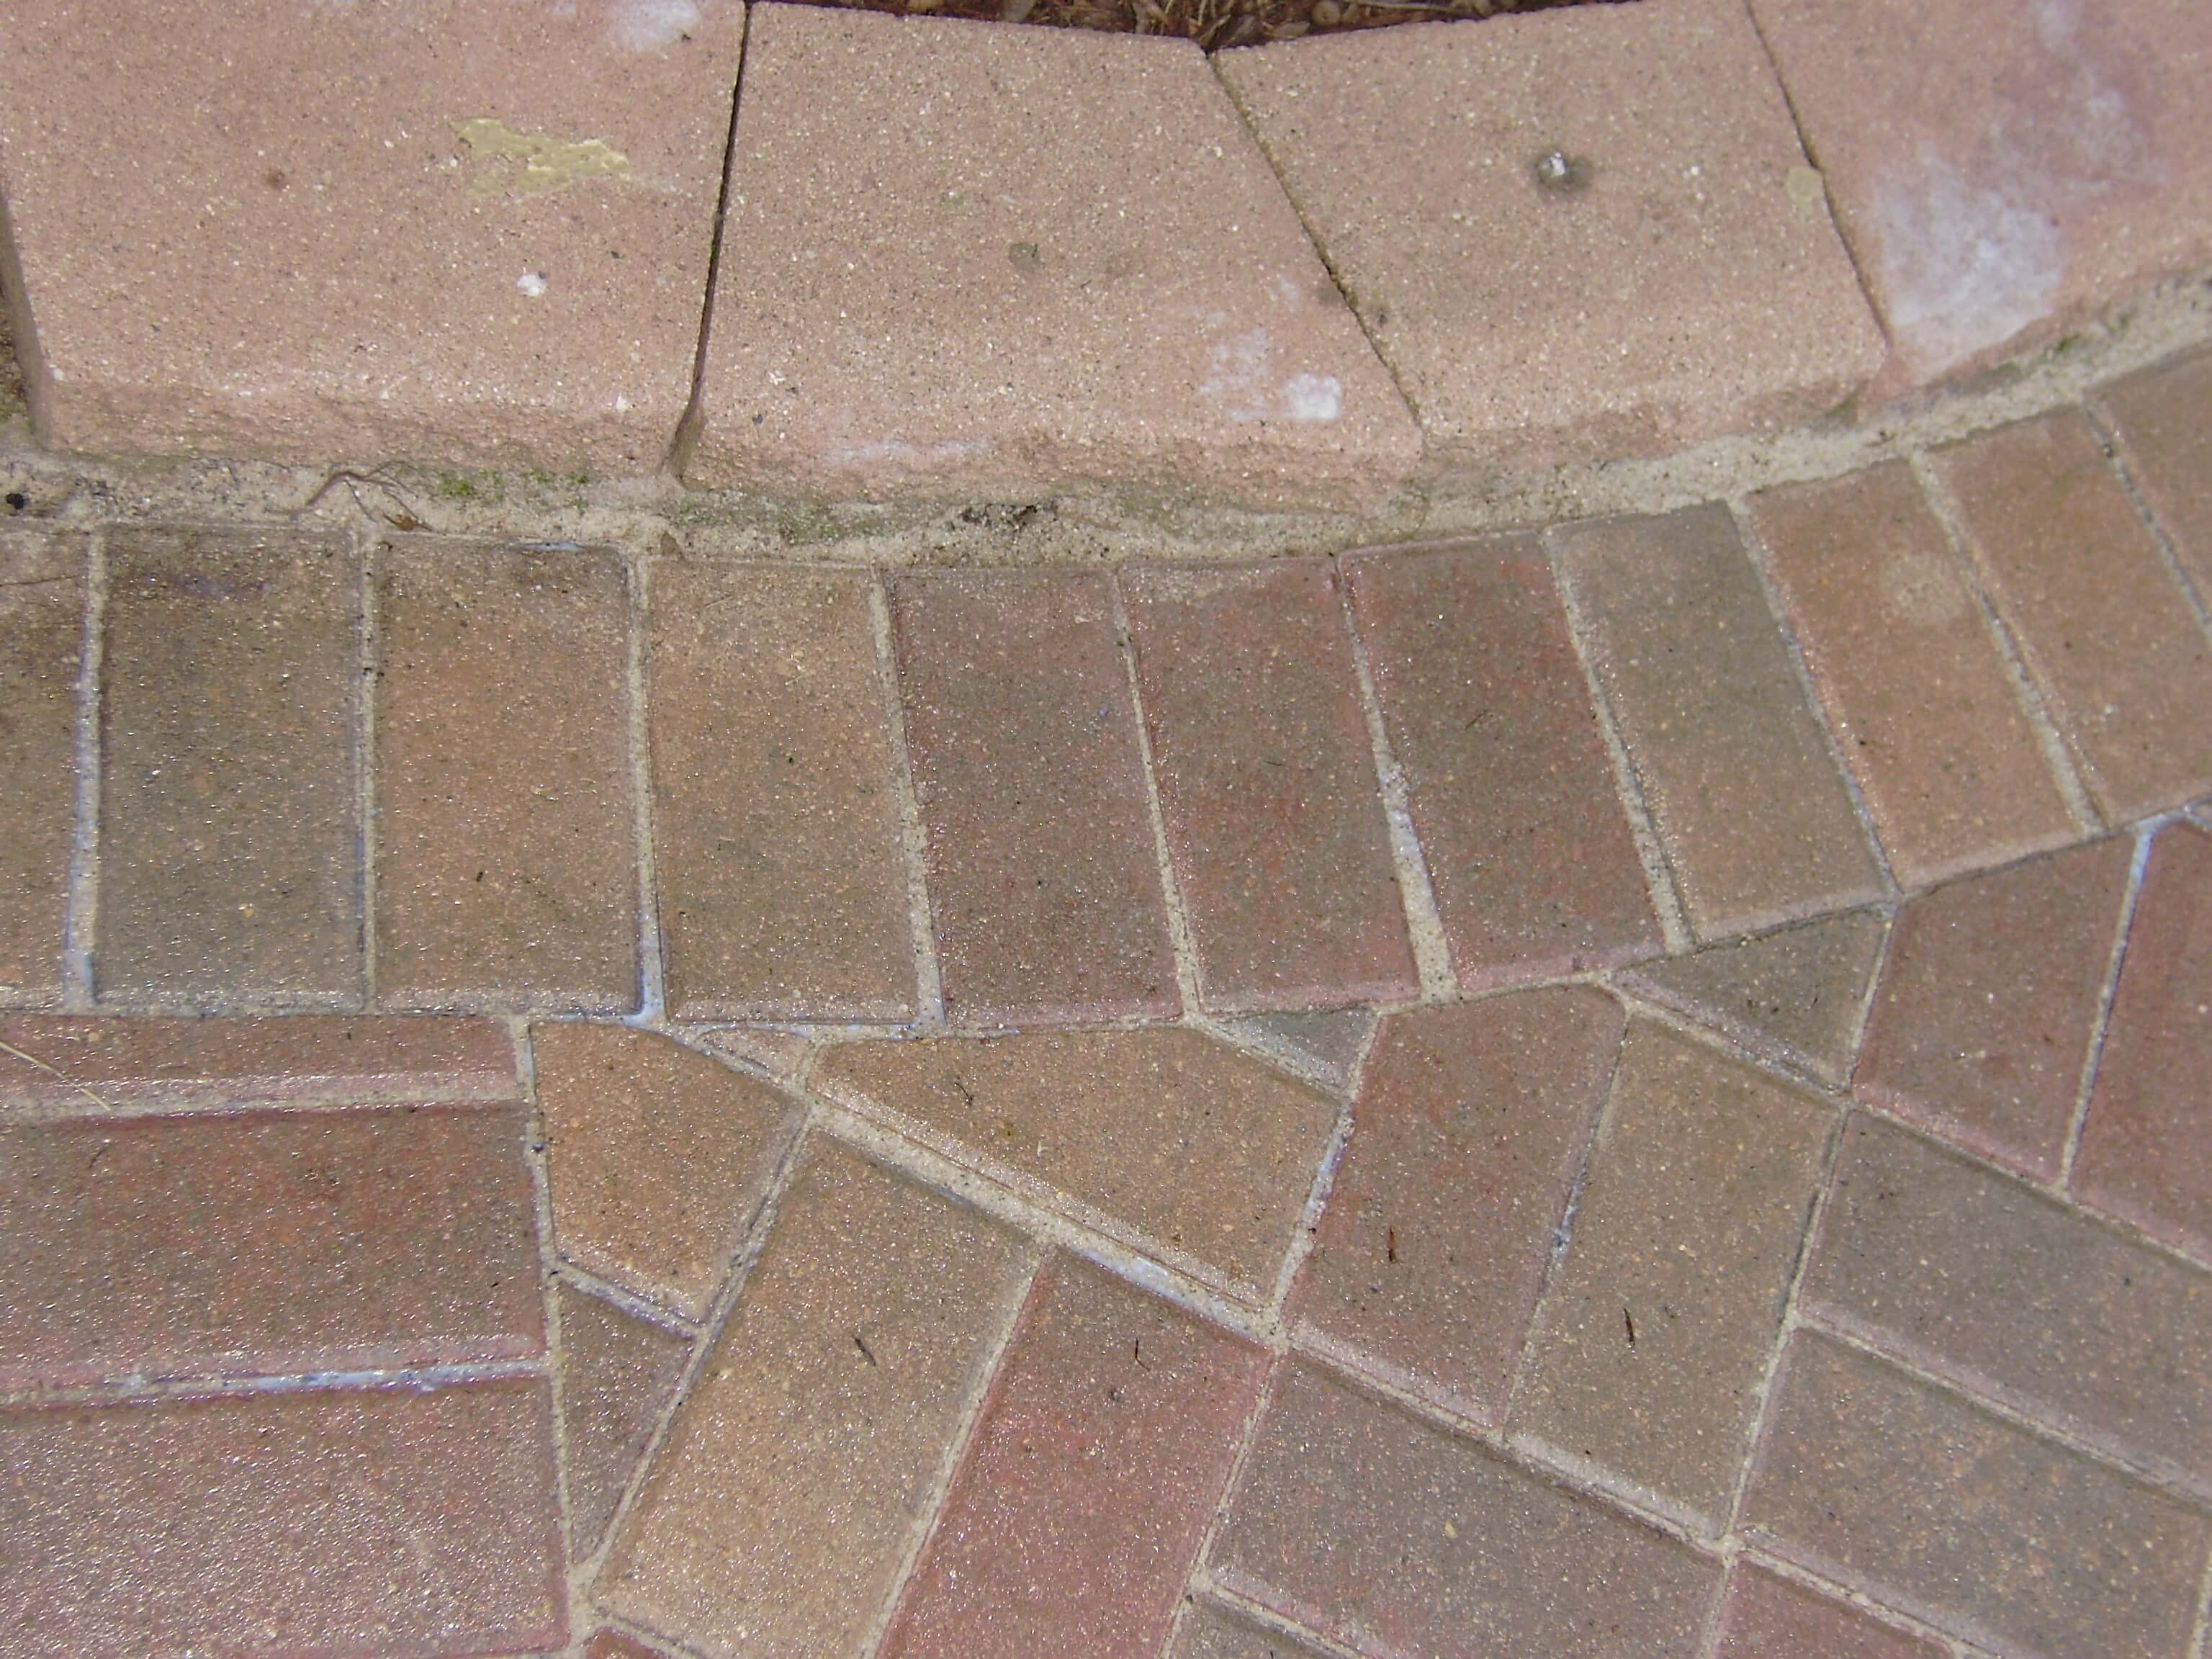 Patio paver walkway that has recently been sanded